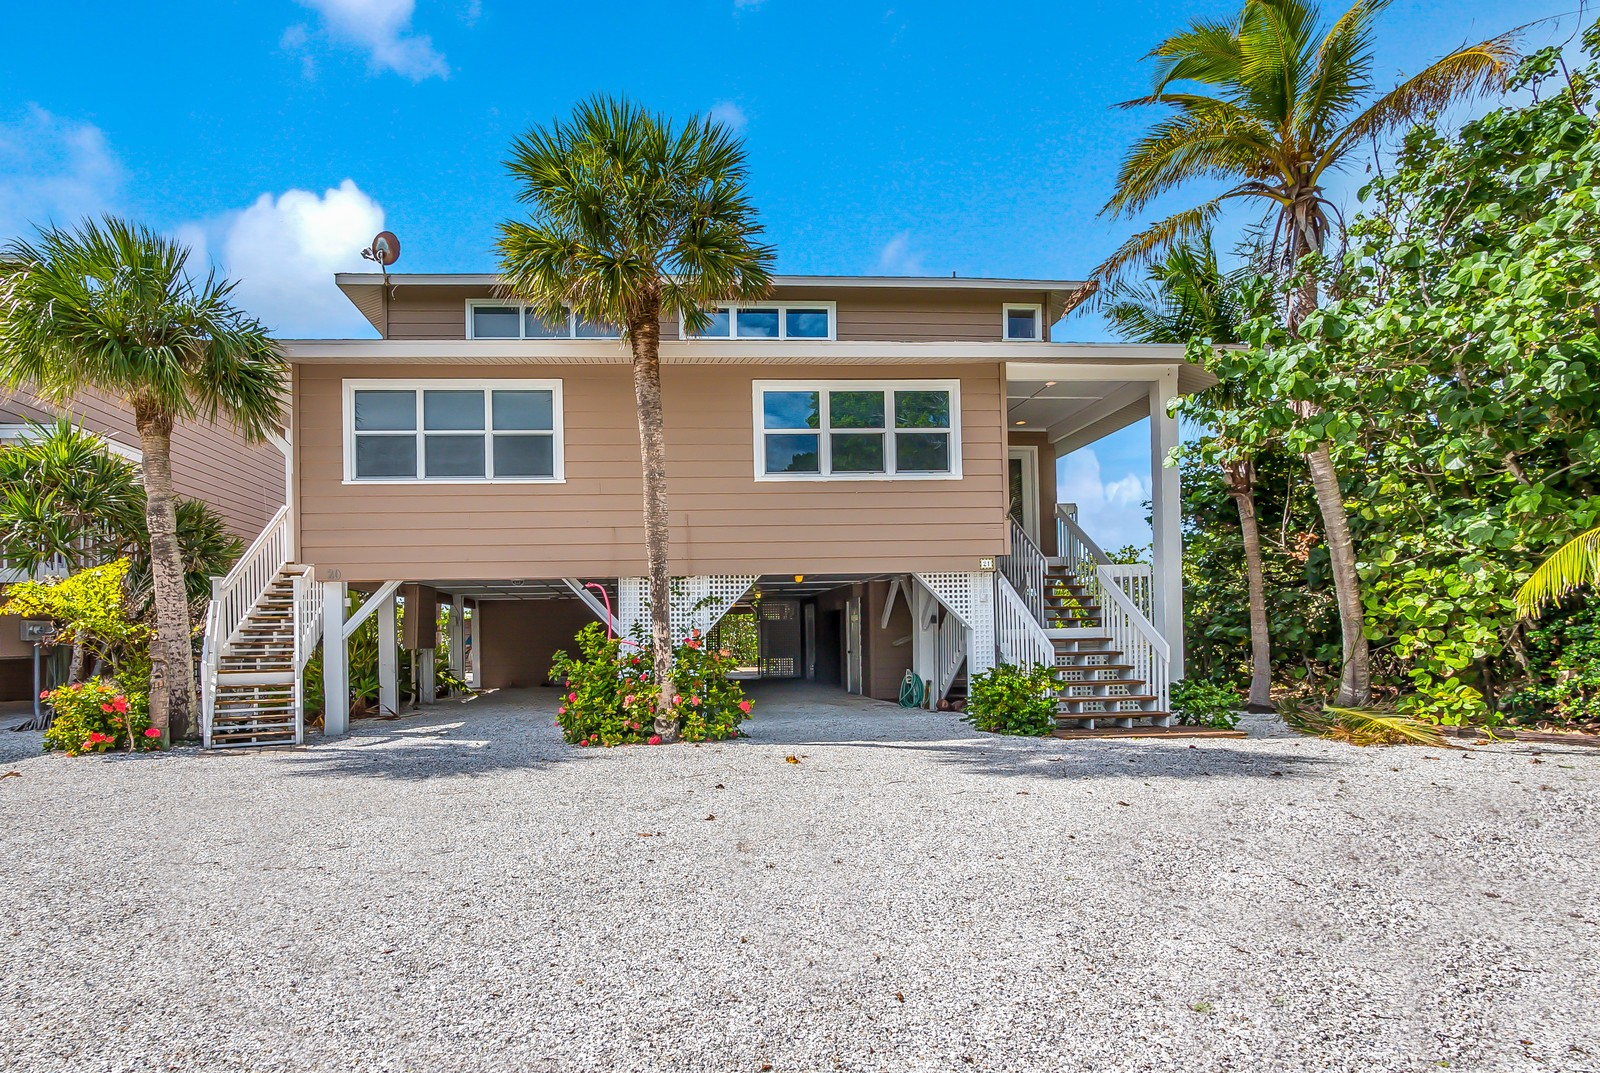 Single Family Home for Rent at 290 Gulf Blvd, Lighthouse #21 290 Gulf Blvd, Lighthouse #21 Boca Grande, Florida 33921 United States